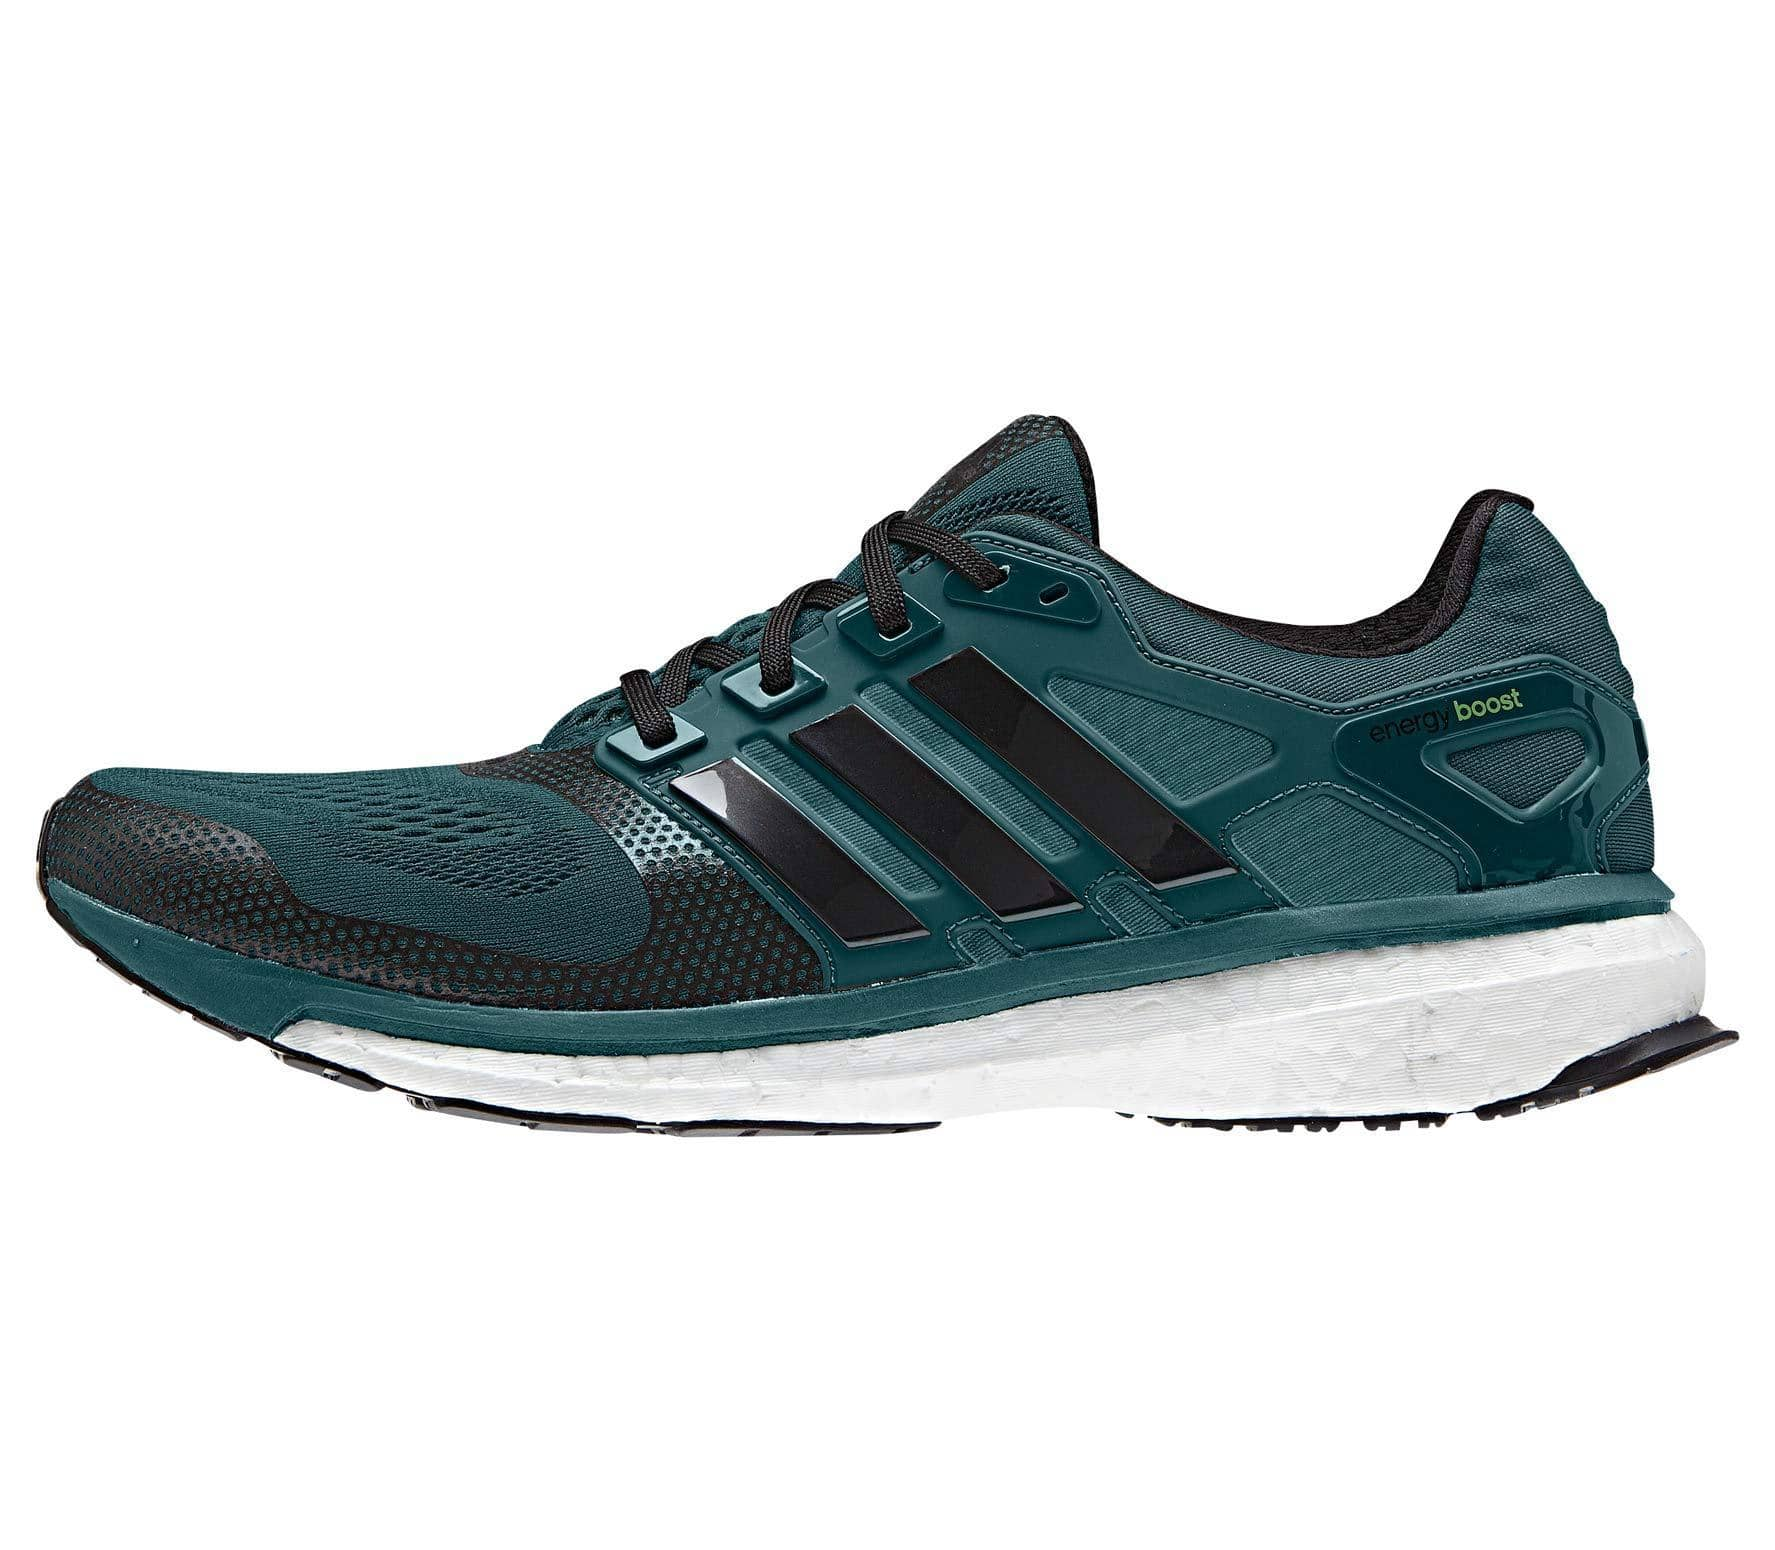 differently 38790 4909f Adidas - Energy Boost 2 ESM men s running shoes (dark green black)